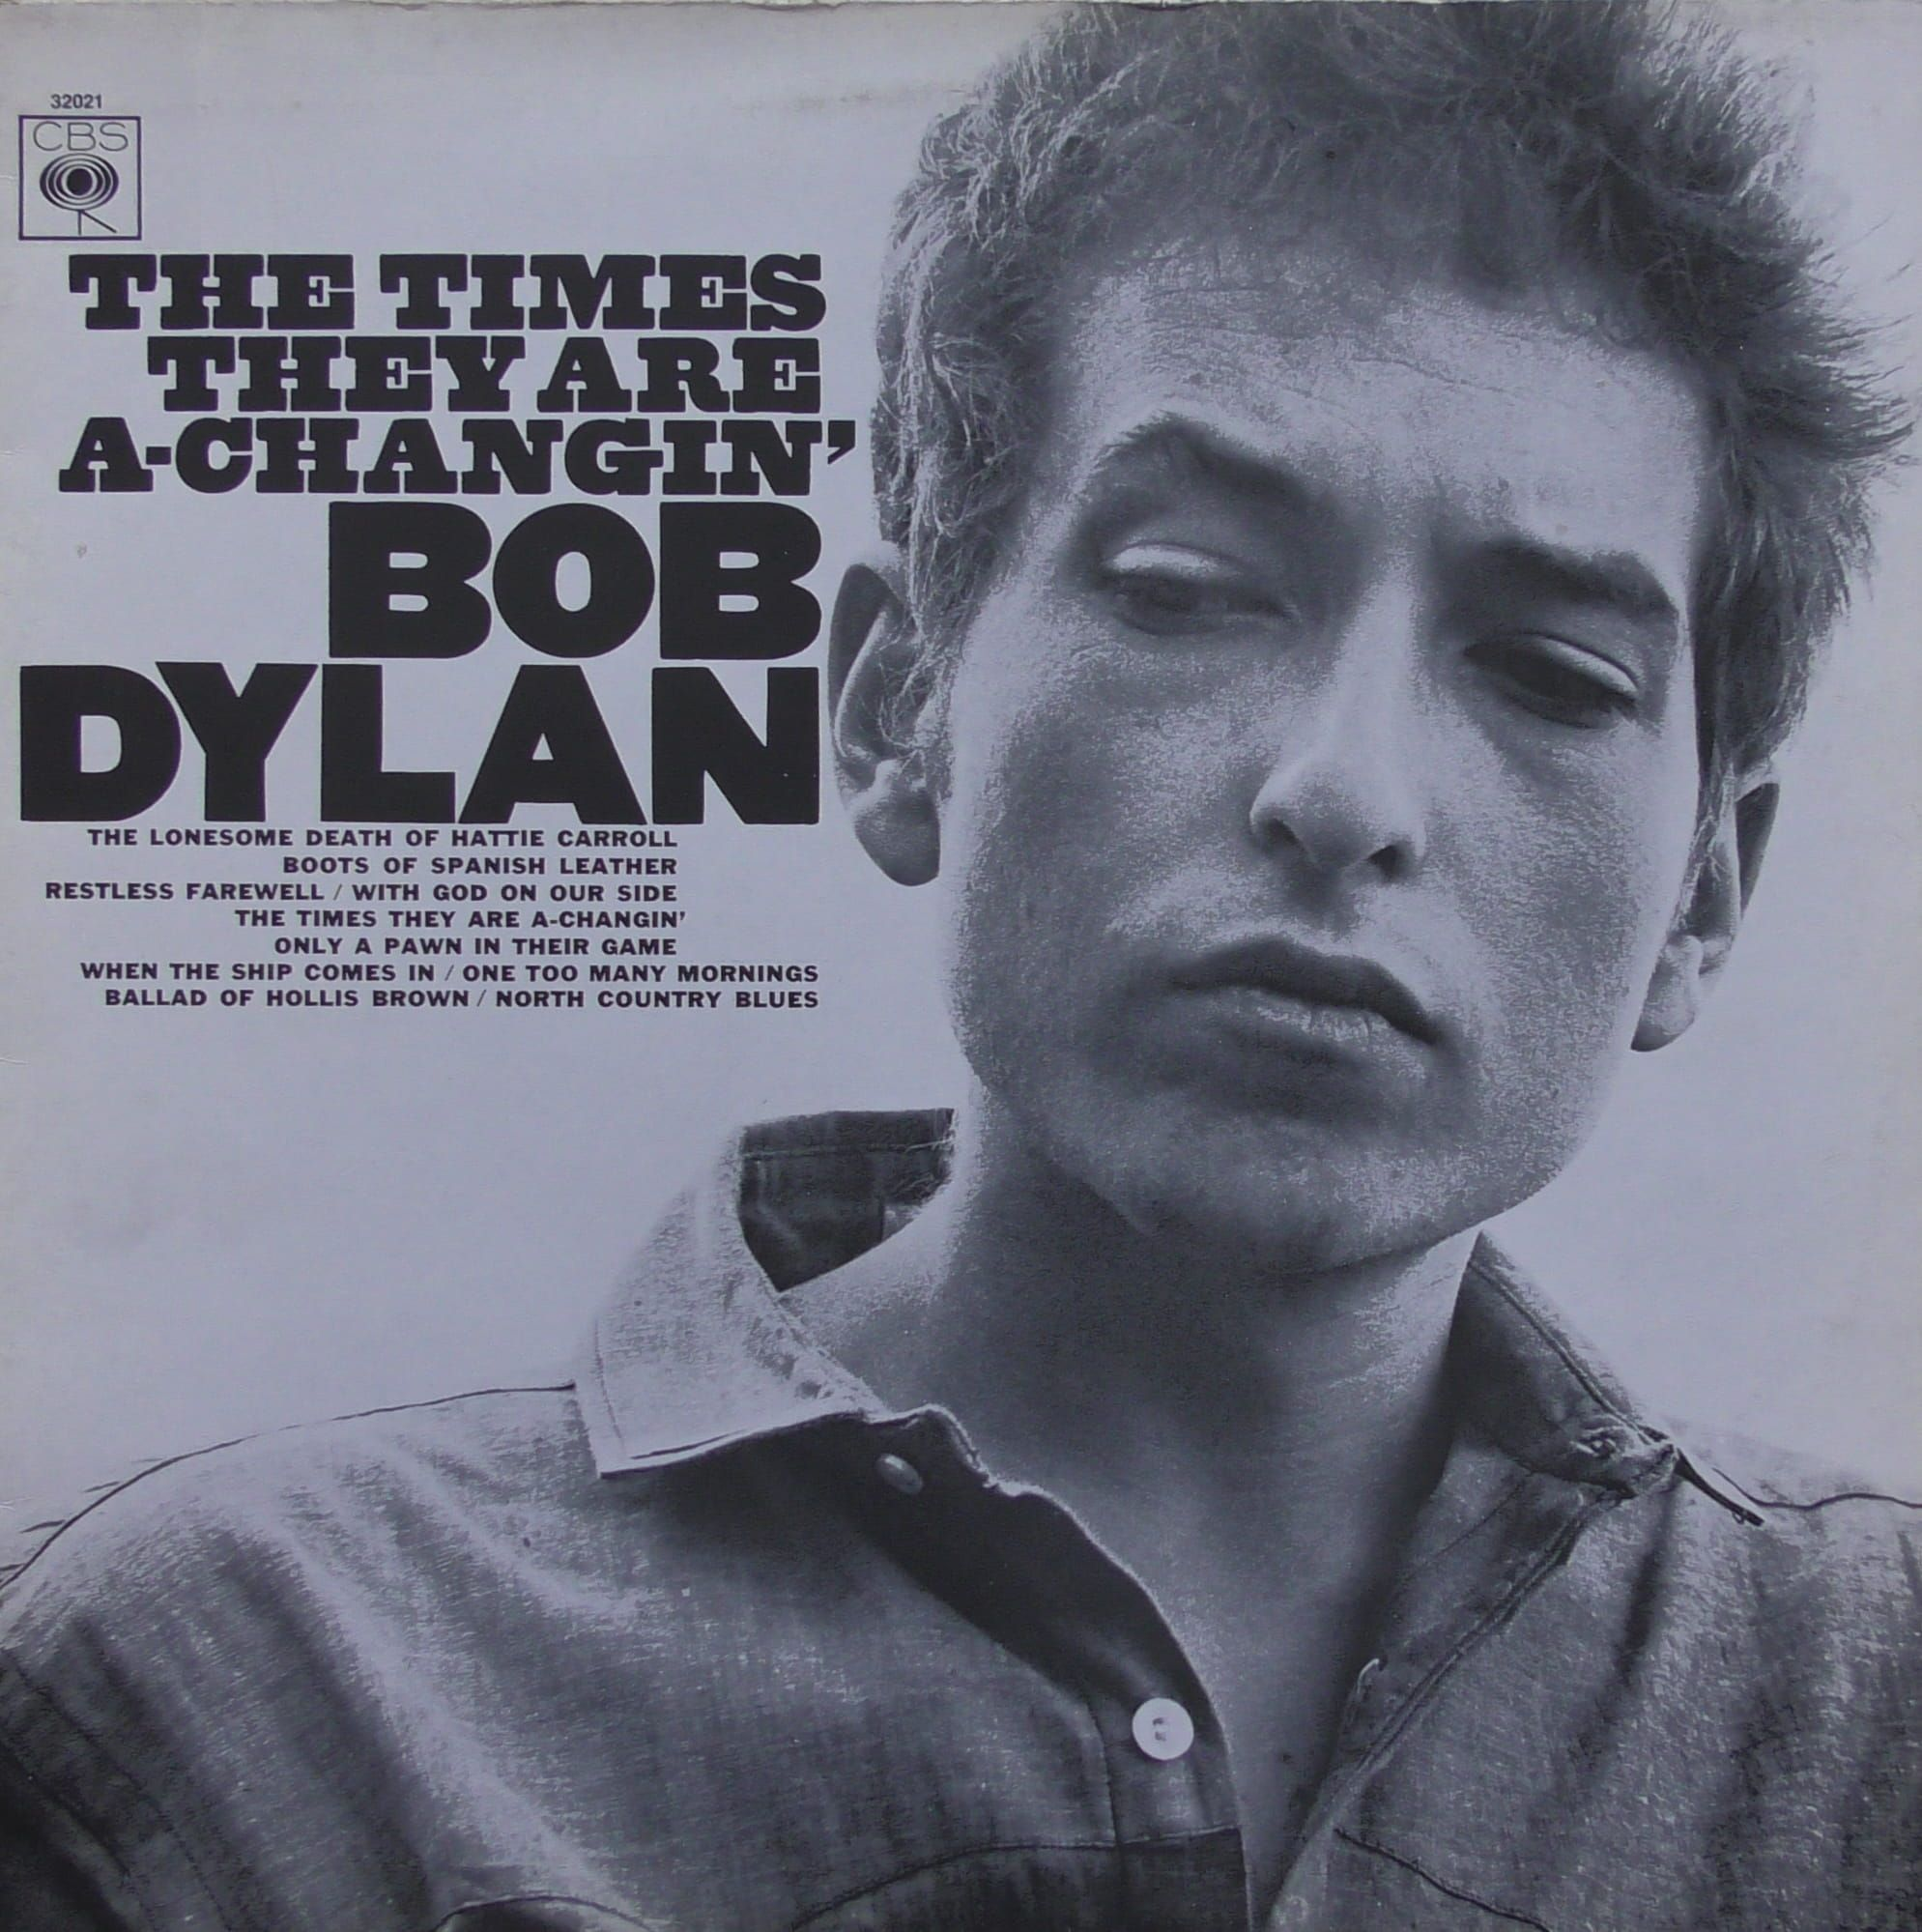 Bob Dylan The Times They Are A Changin Cbs 32021 In 2020 Bob Dylan Album Covers Bob Dylan Dylan Songs